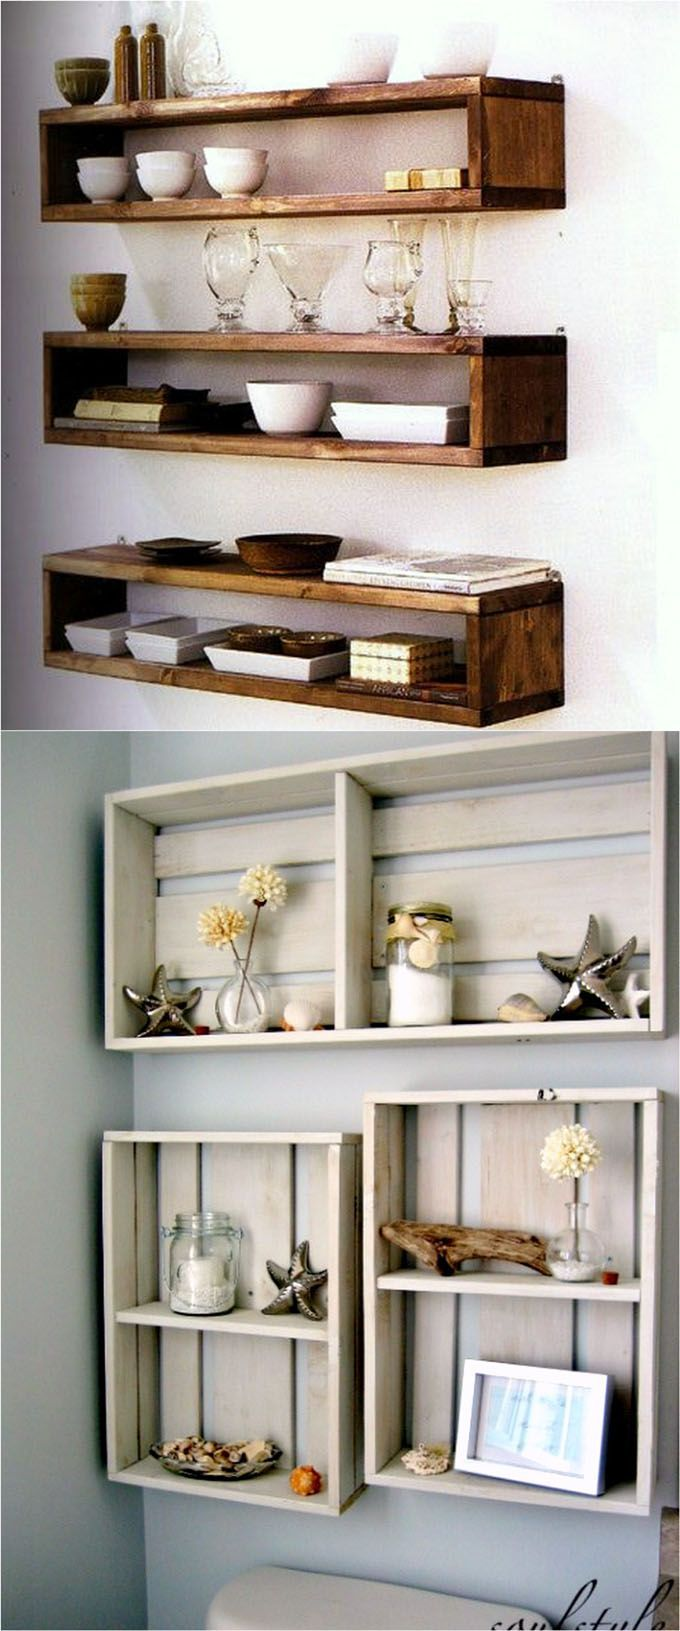 179 Best Open Shelves Images On Pinterest: 25+ Best Shelf Ideas On Pinterest